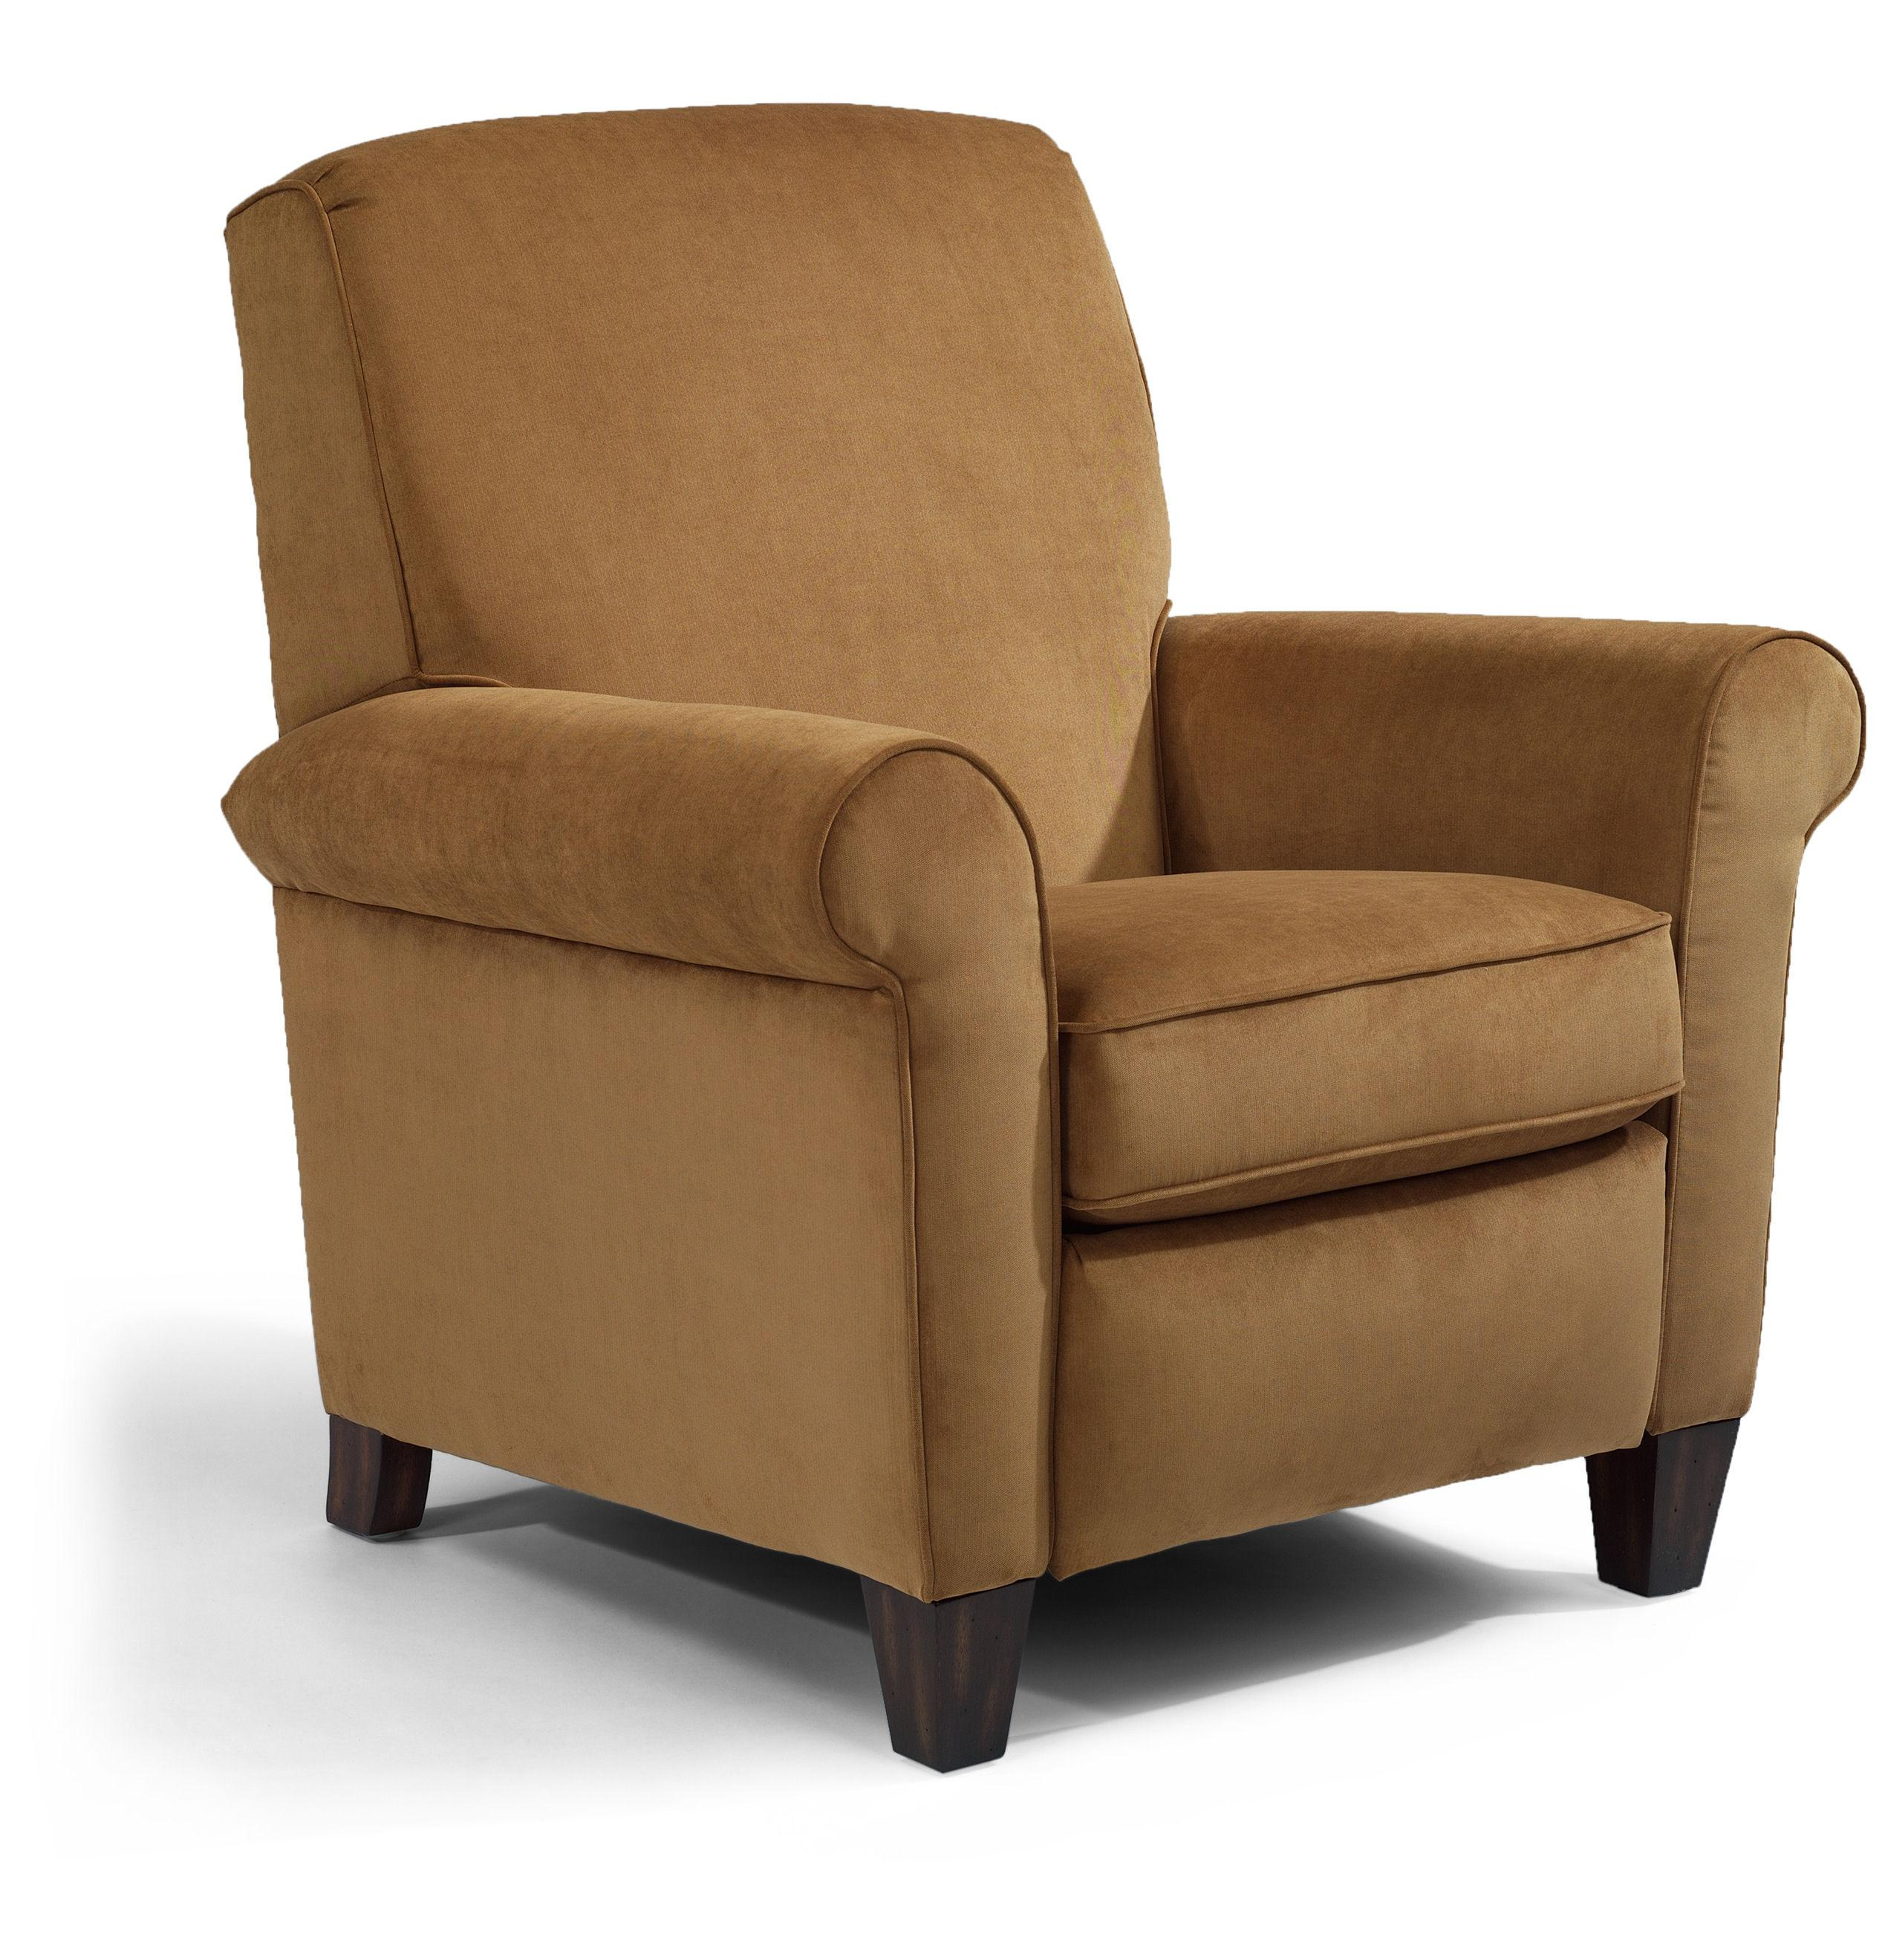 Flexsteel Dana Wall Recliner - Item Number: 5990-503